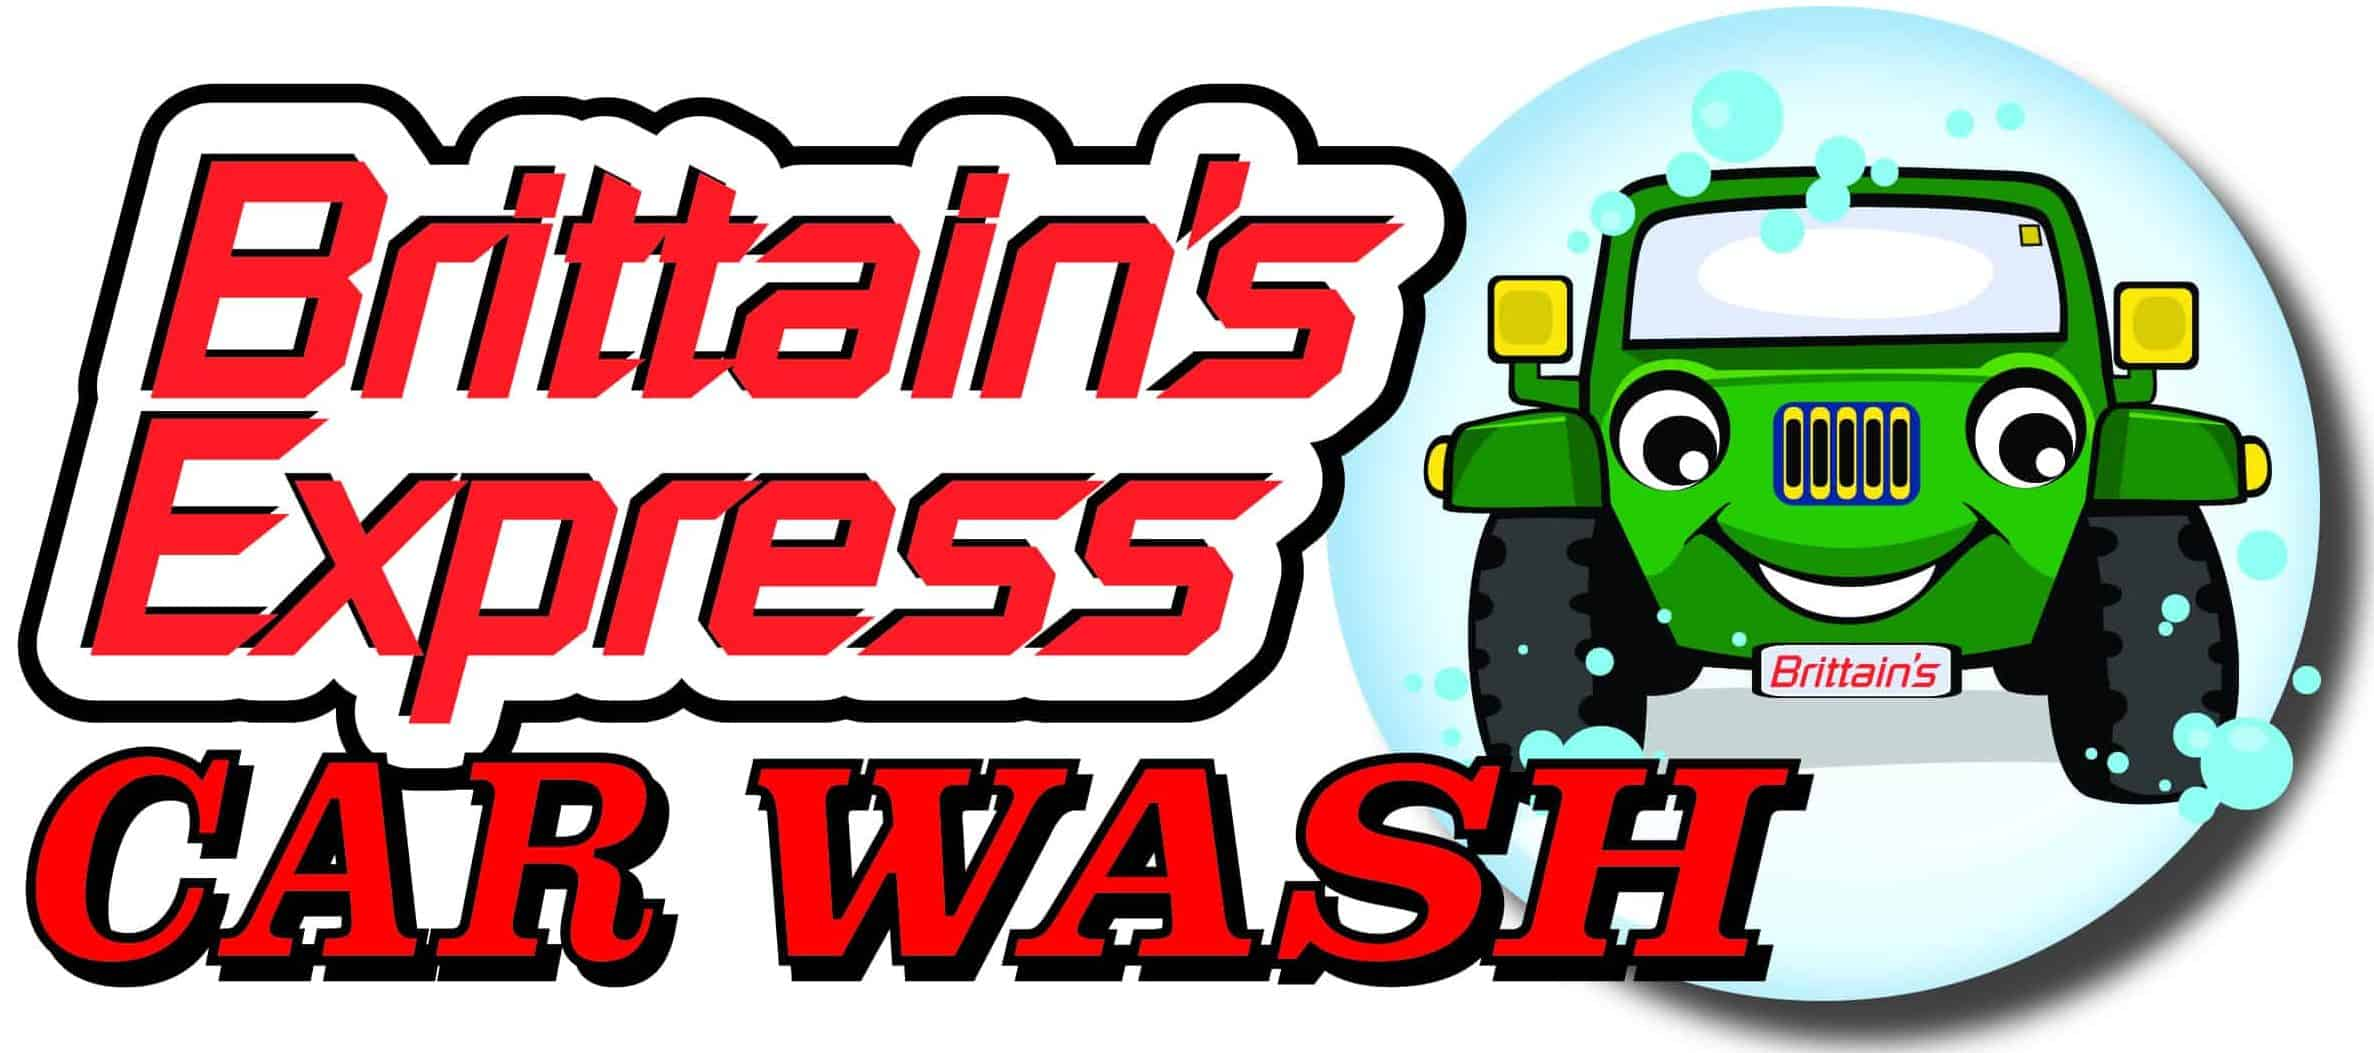 Brittains' Car Wash